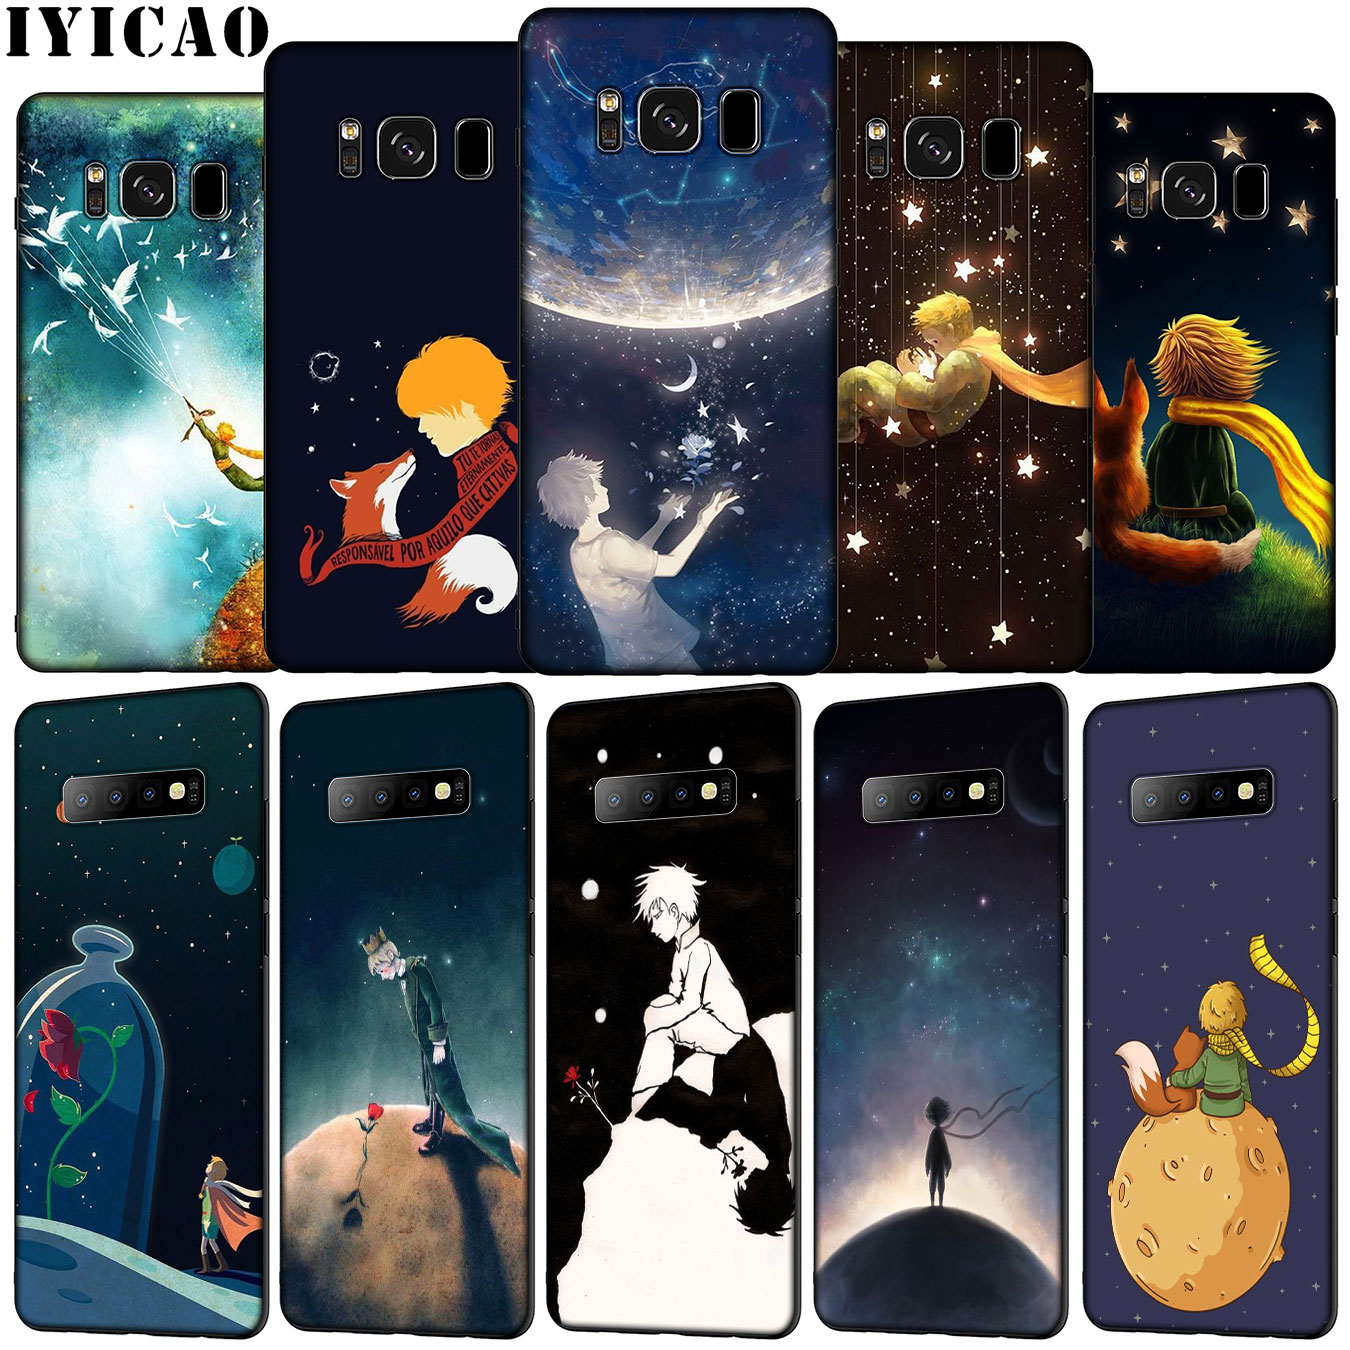 IYICAO The Little Prince Soft Silicone Phone <font><b>Case</b></font> for <font><b>Samsung</b></font> Galaxy S20 Ultra <font><b>S10e</b></font> S9 S8 Plus S6 S7 Edge S10 Lite Cover image